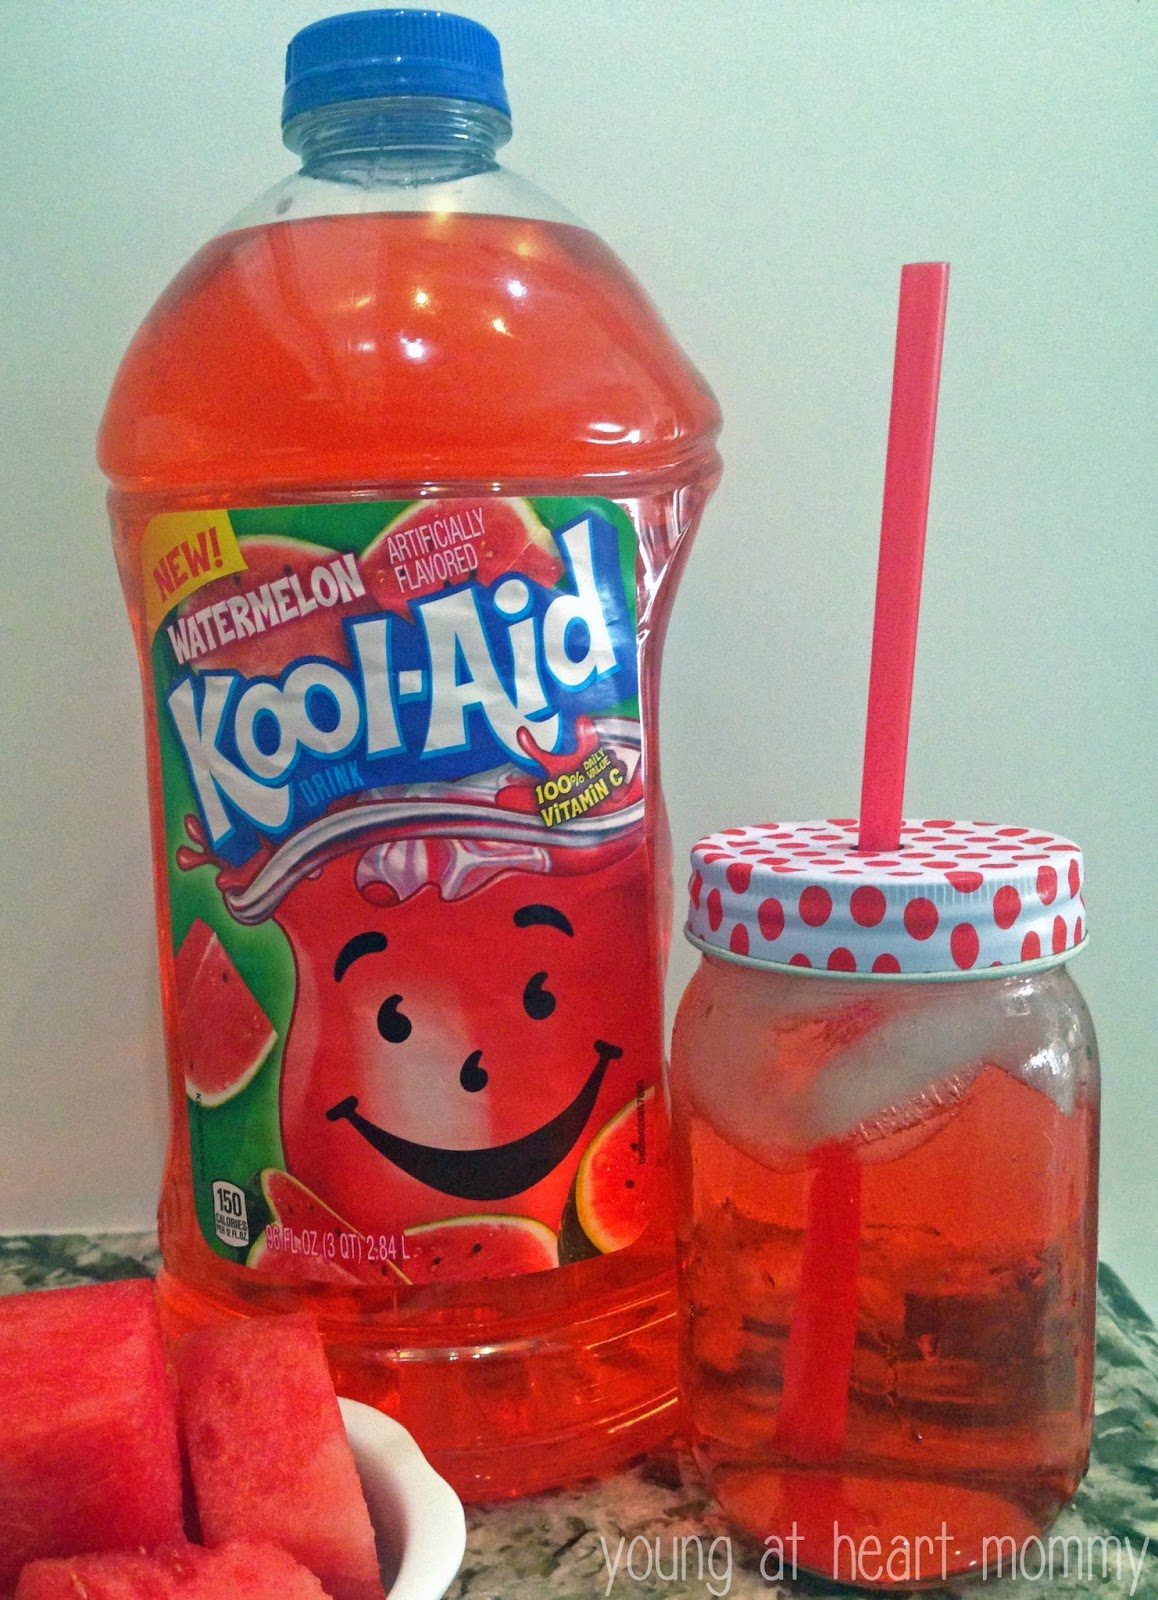 Kool Aid Juice Bottles Bottle Designs